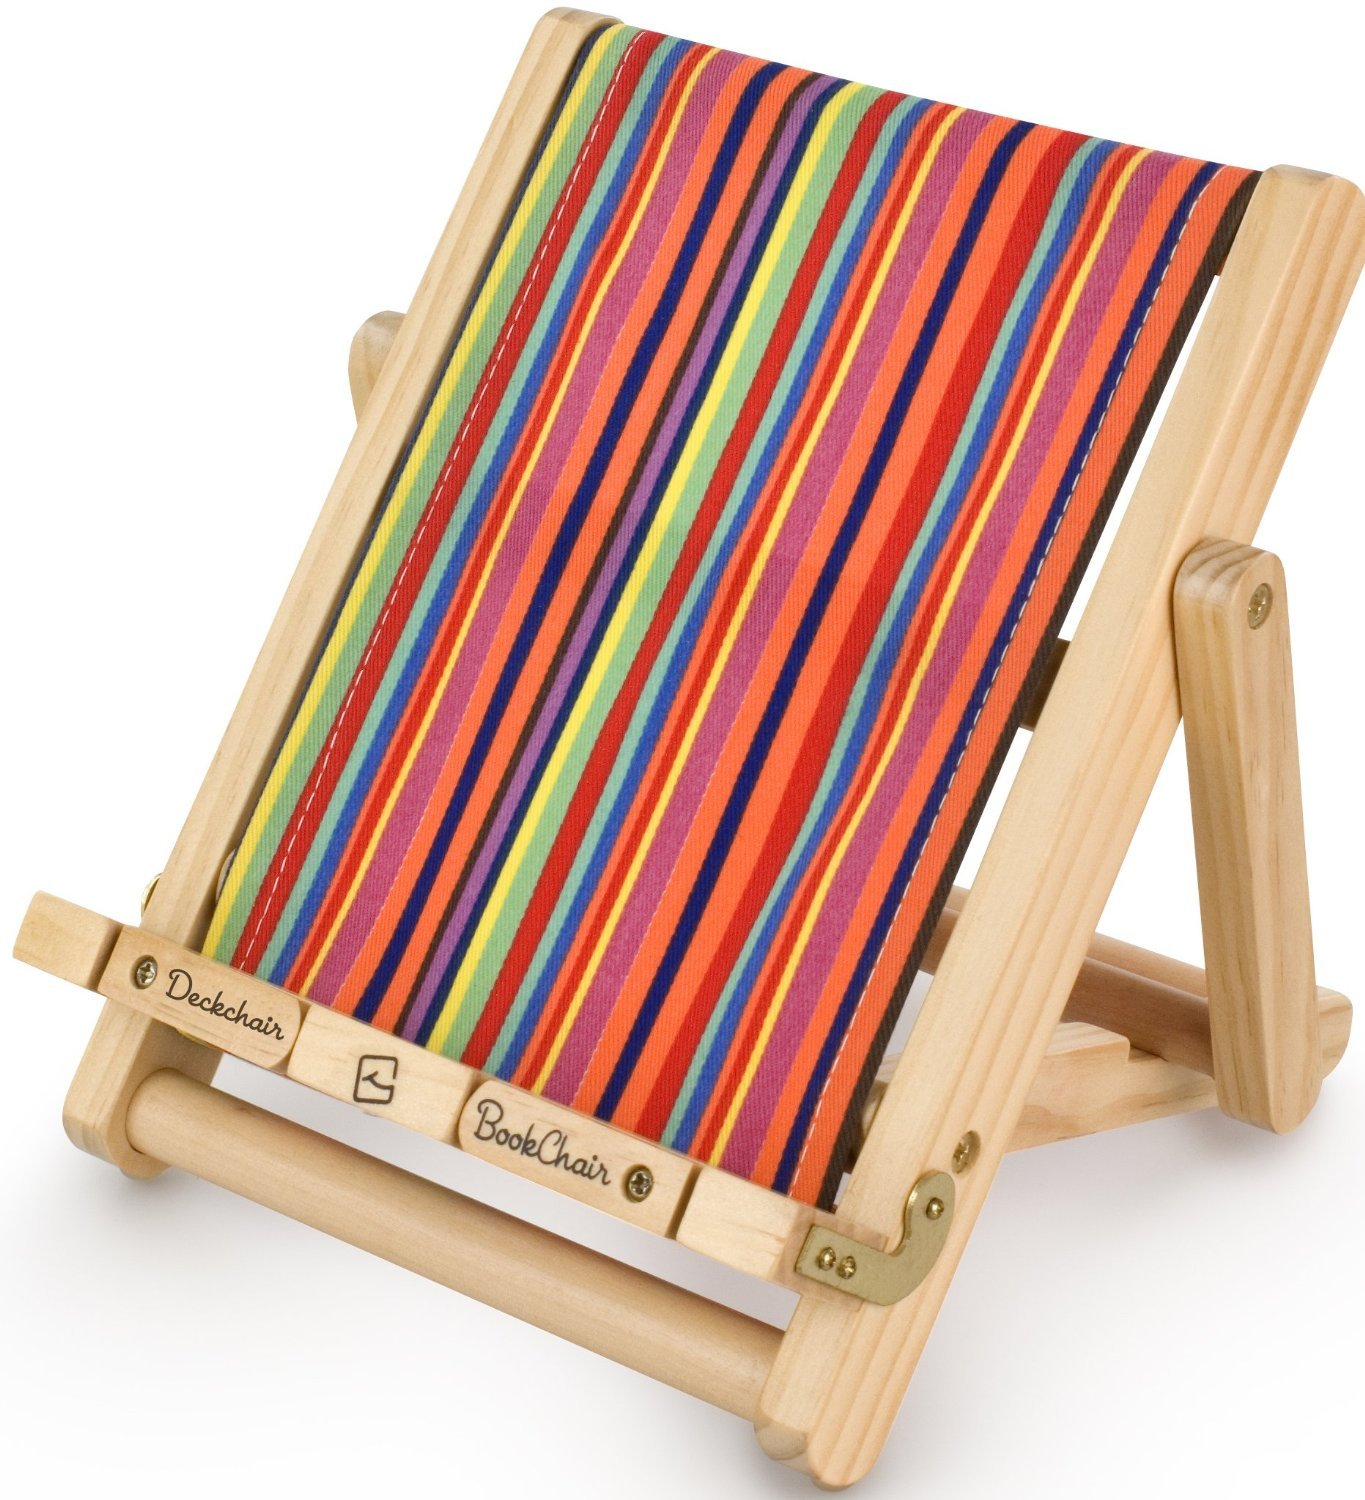 book stand ipad copy holder and cookery book rest stripy deck